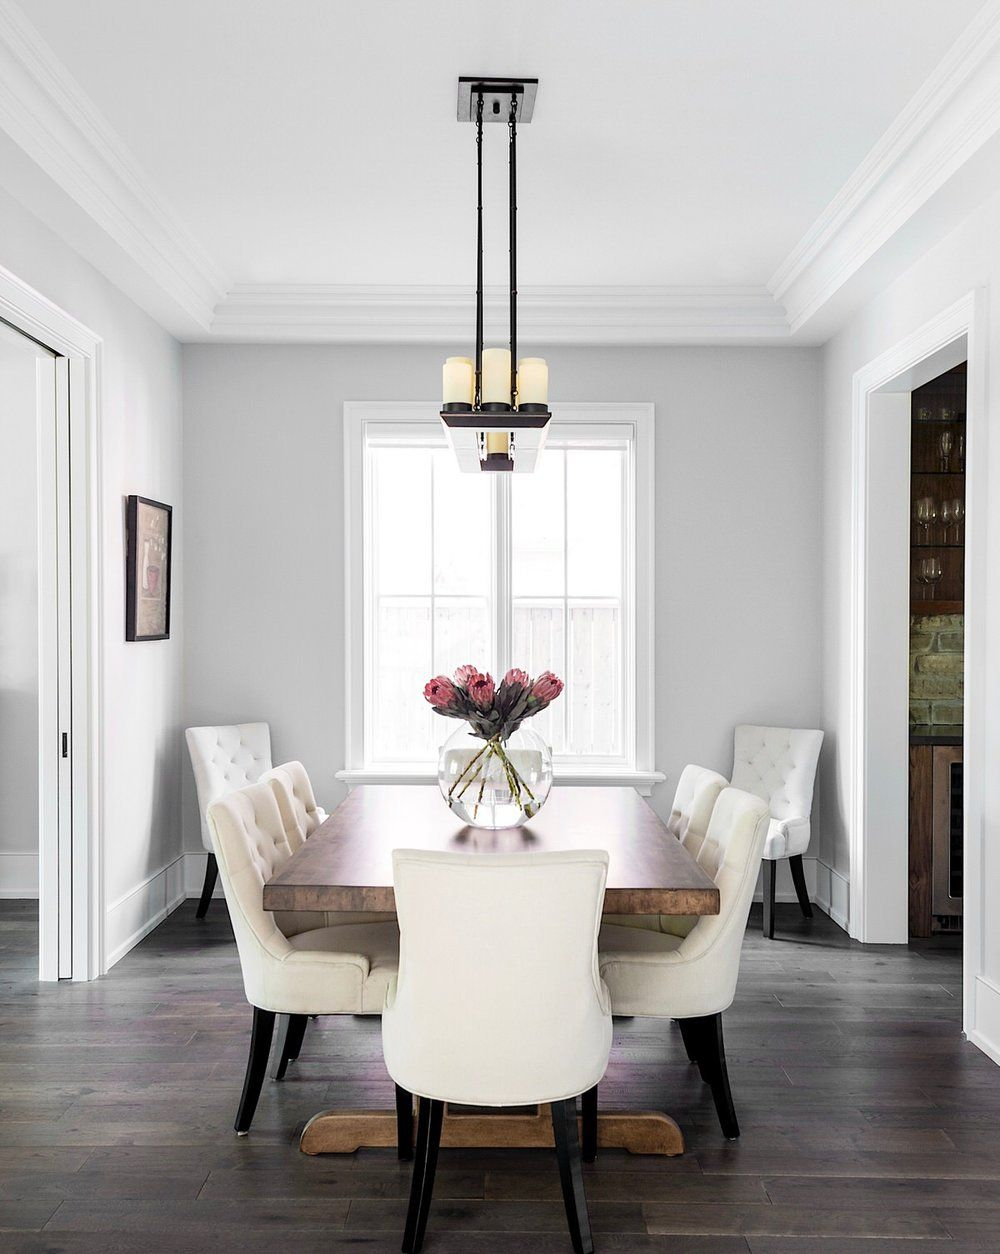 Modern dining room. Light gray walls with white trim and